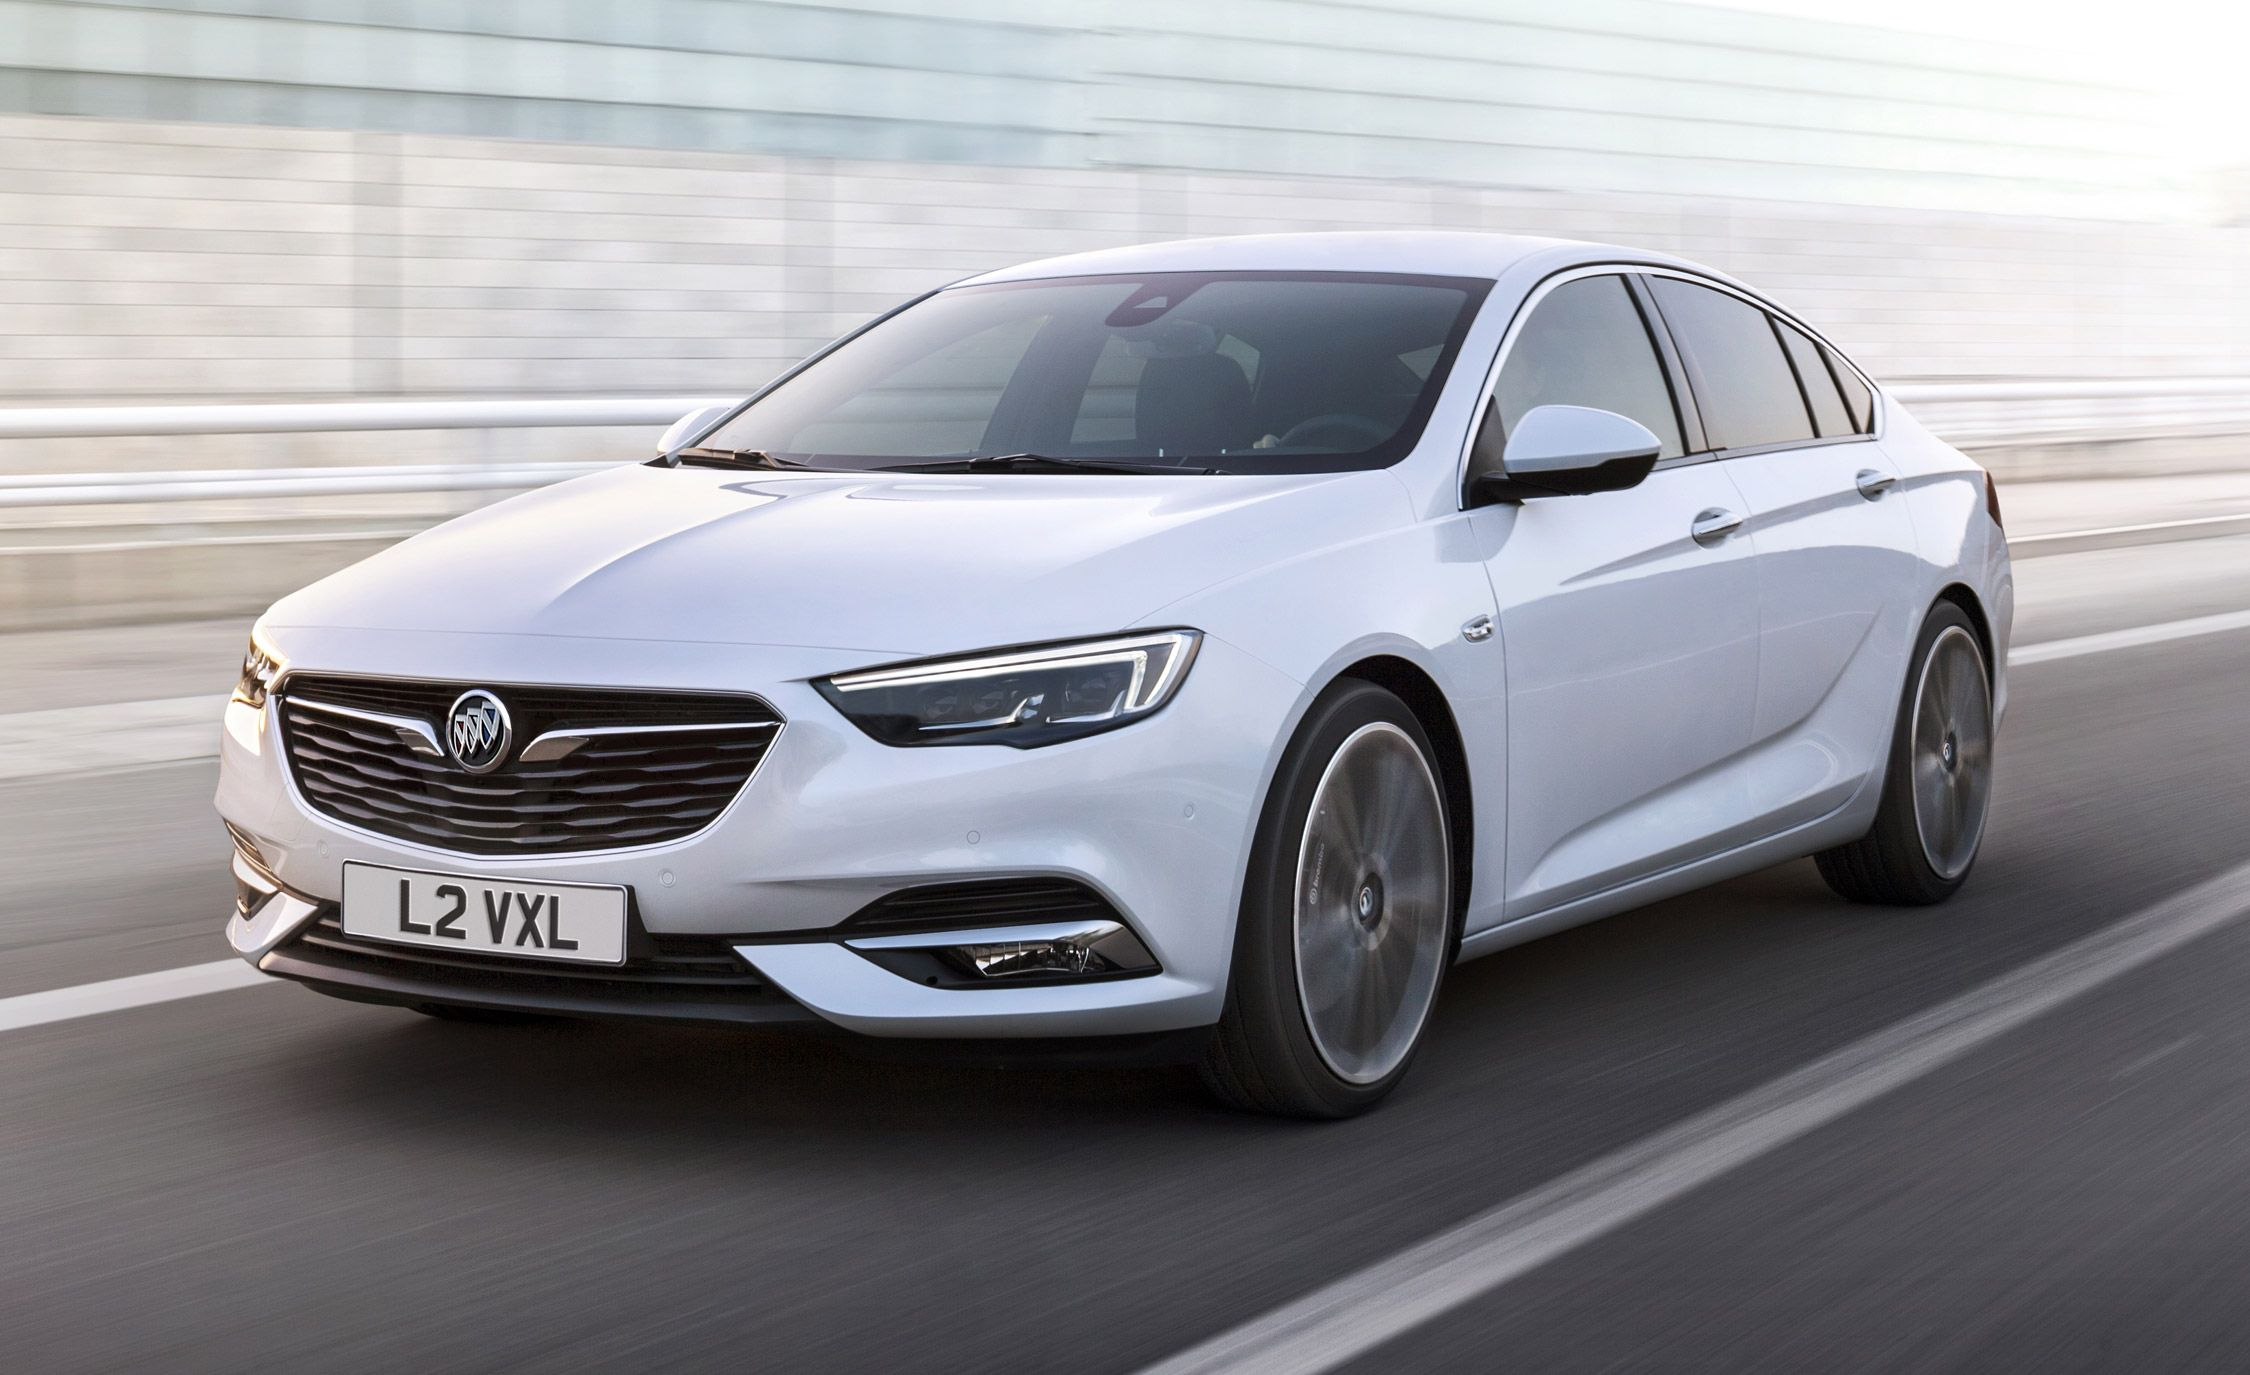 2018 Buick Regal: A Buick We're Genuinely Excited For